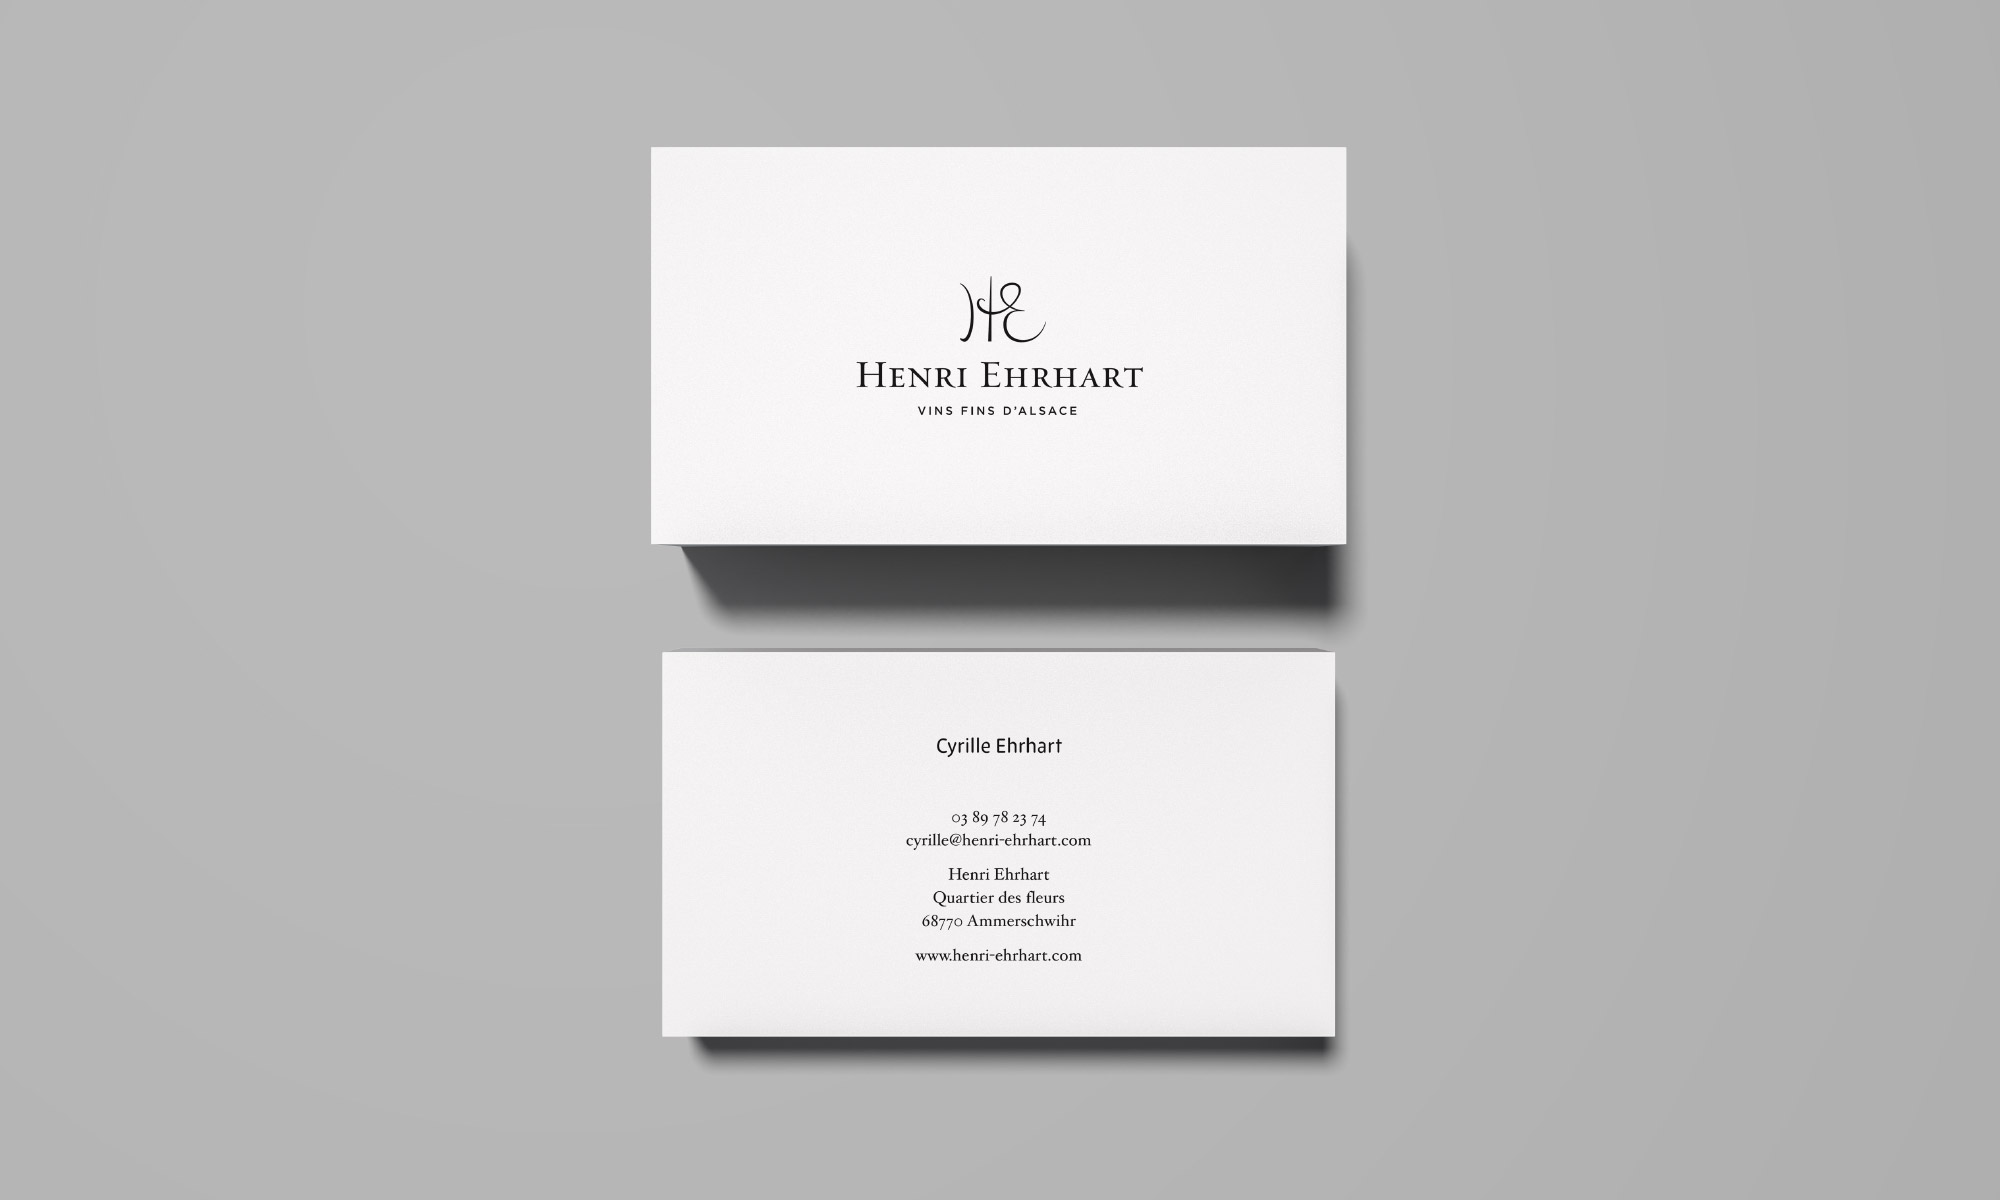 Cyrille Ehrhart business card